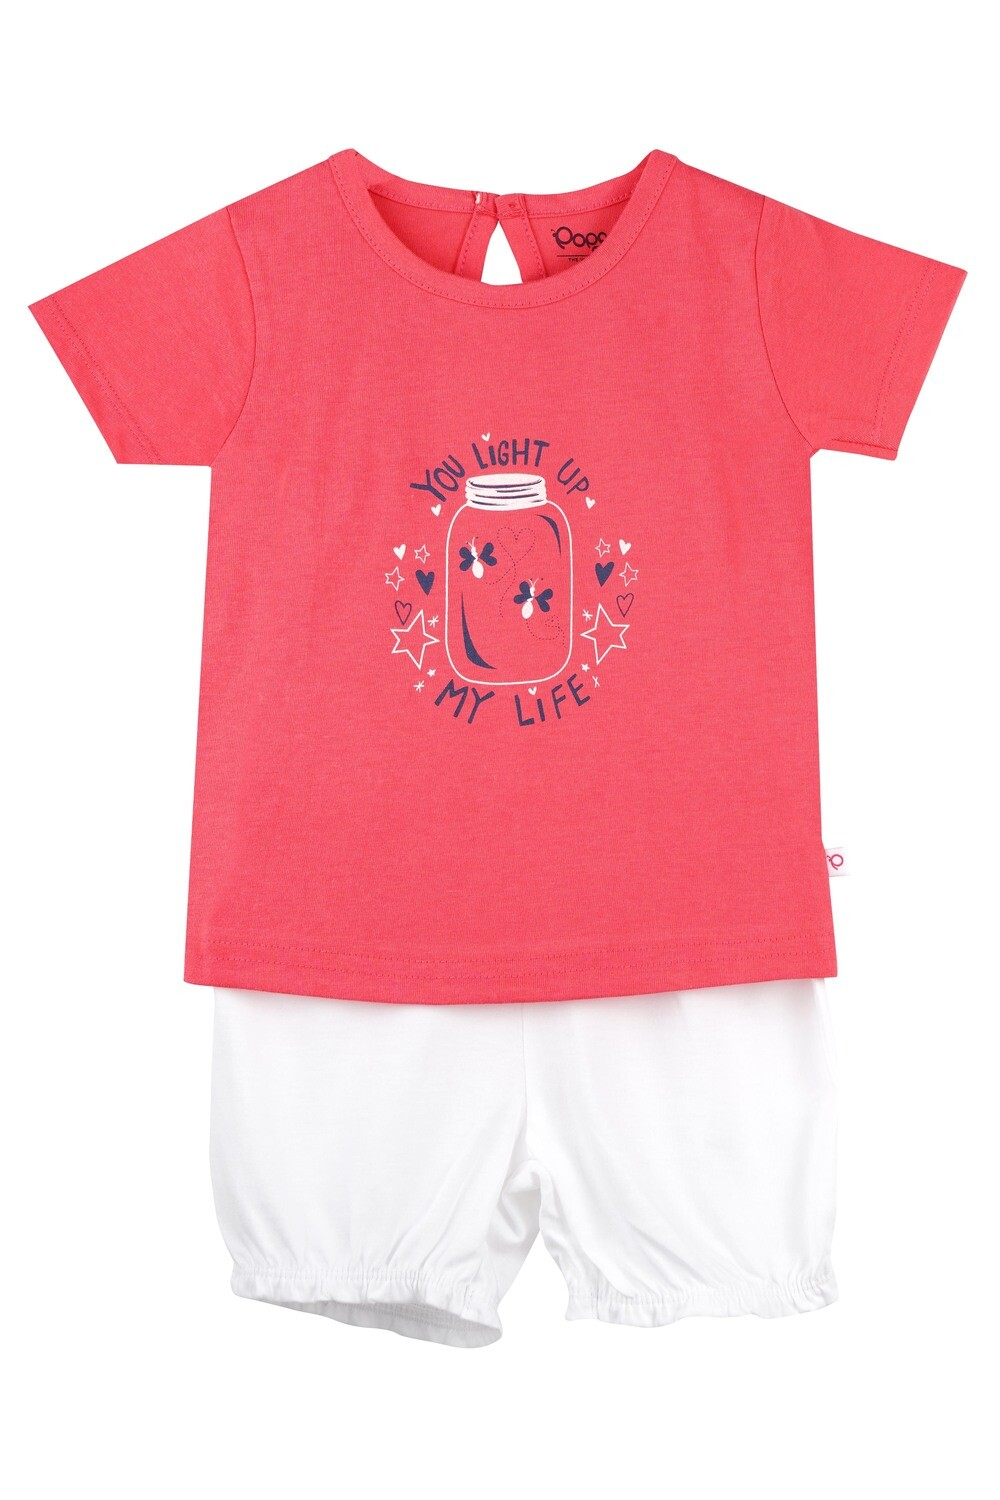 UNICORN Paradise Pink Half sleeve Top and Trouser for Baby Girls